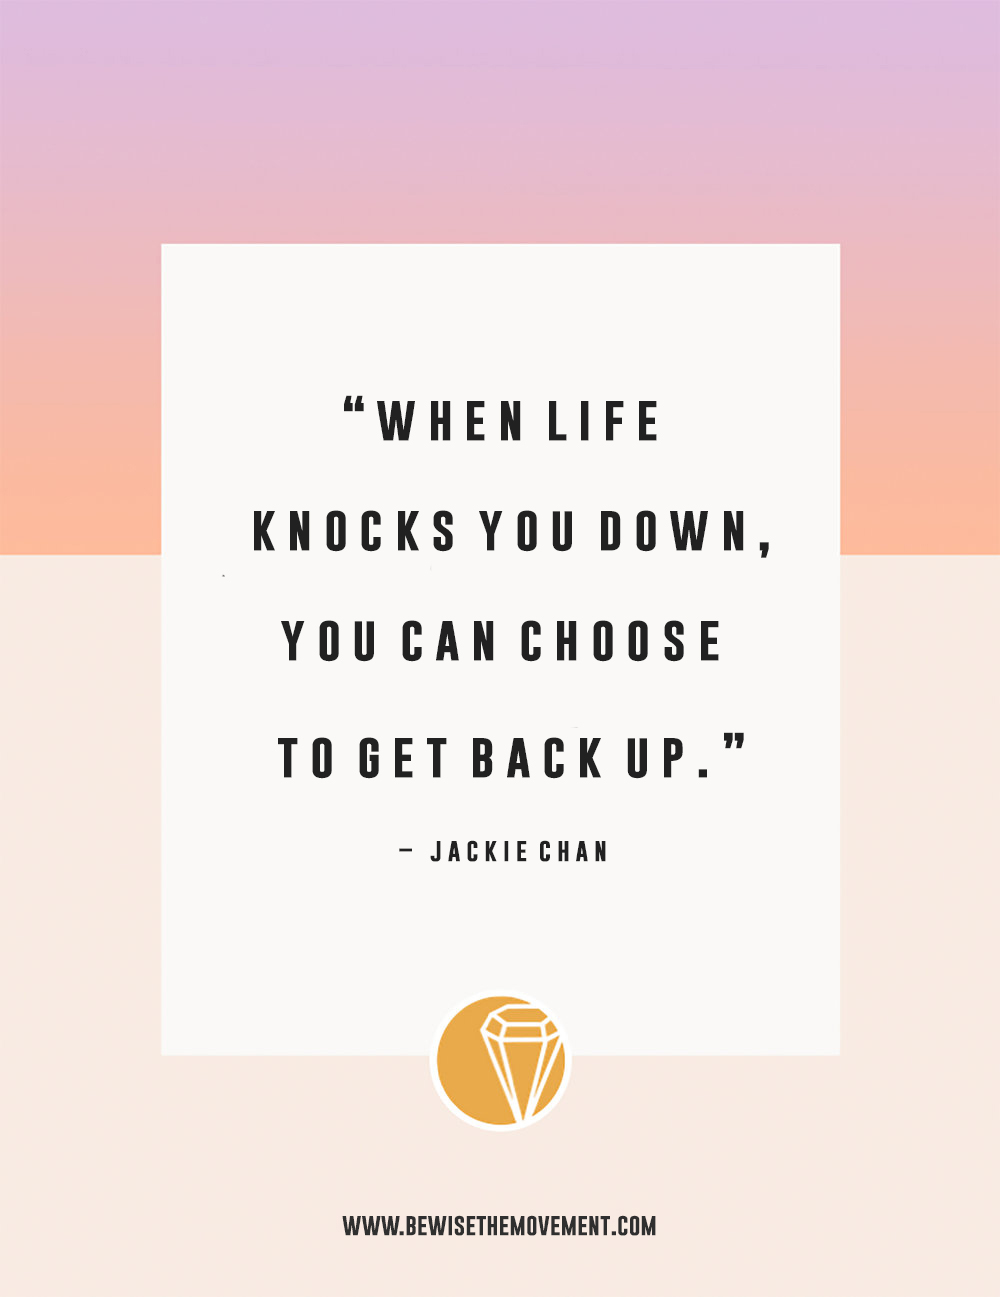 4 ways to get back up when life knocks you down